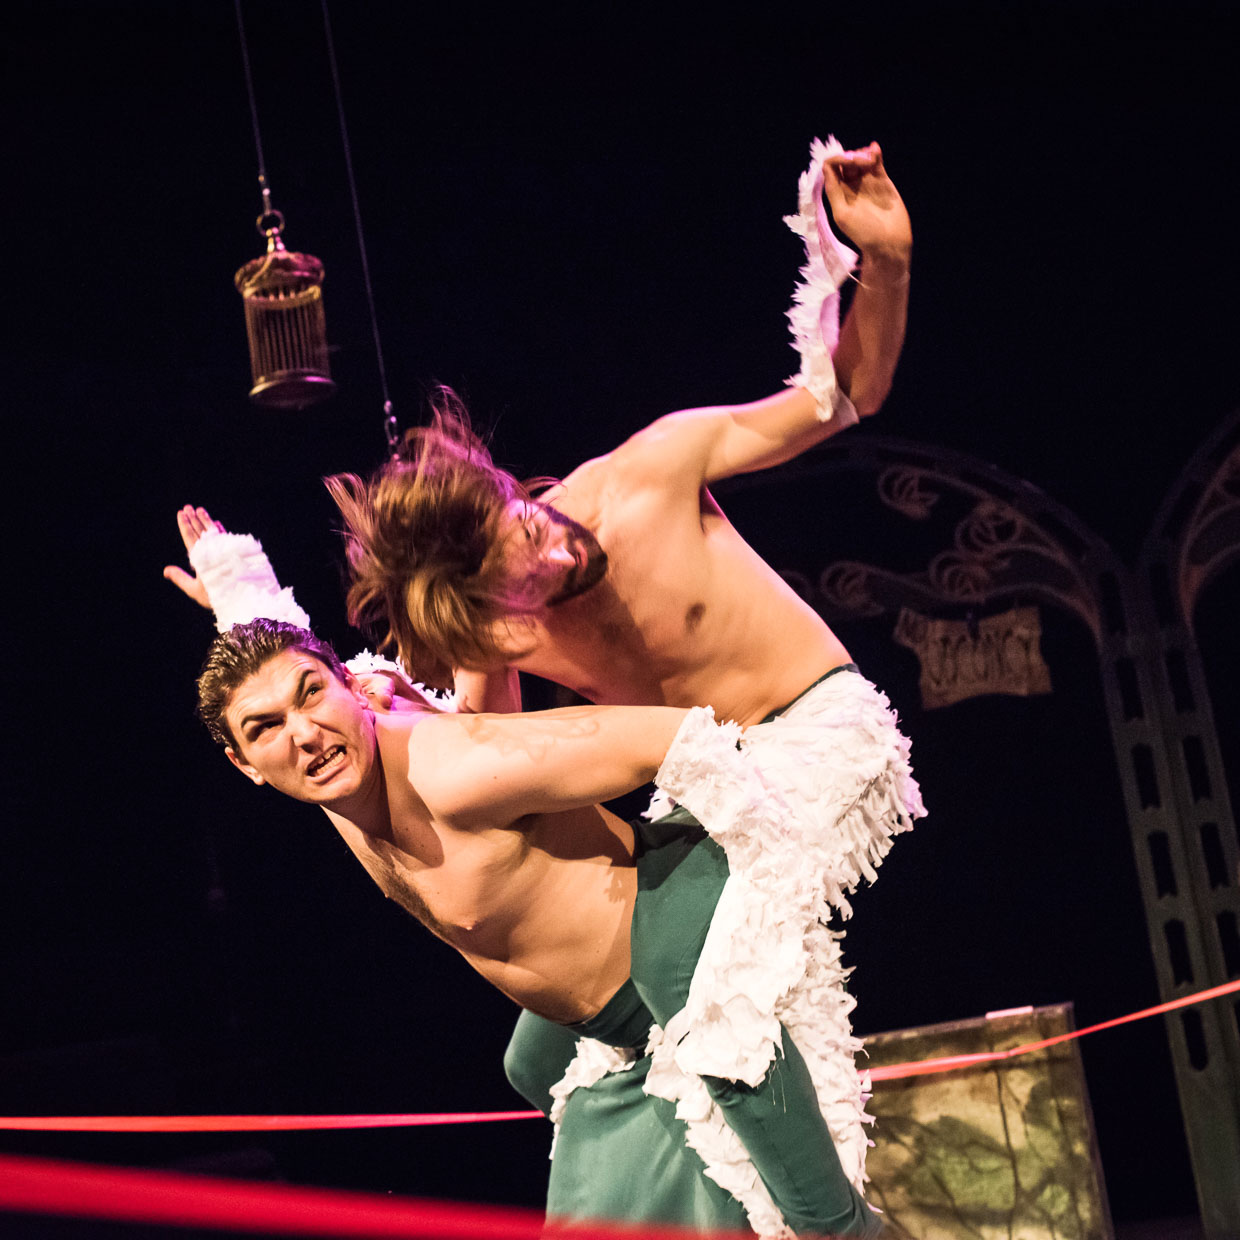 Piggyback riding, fighting, flapping wings in boxing ring.